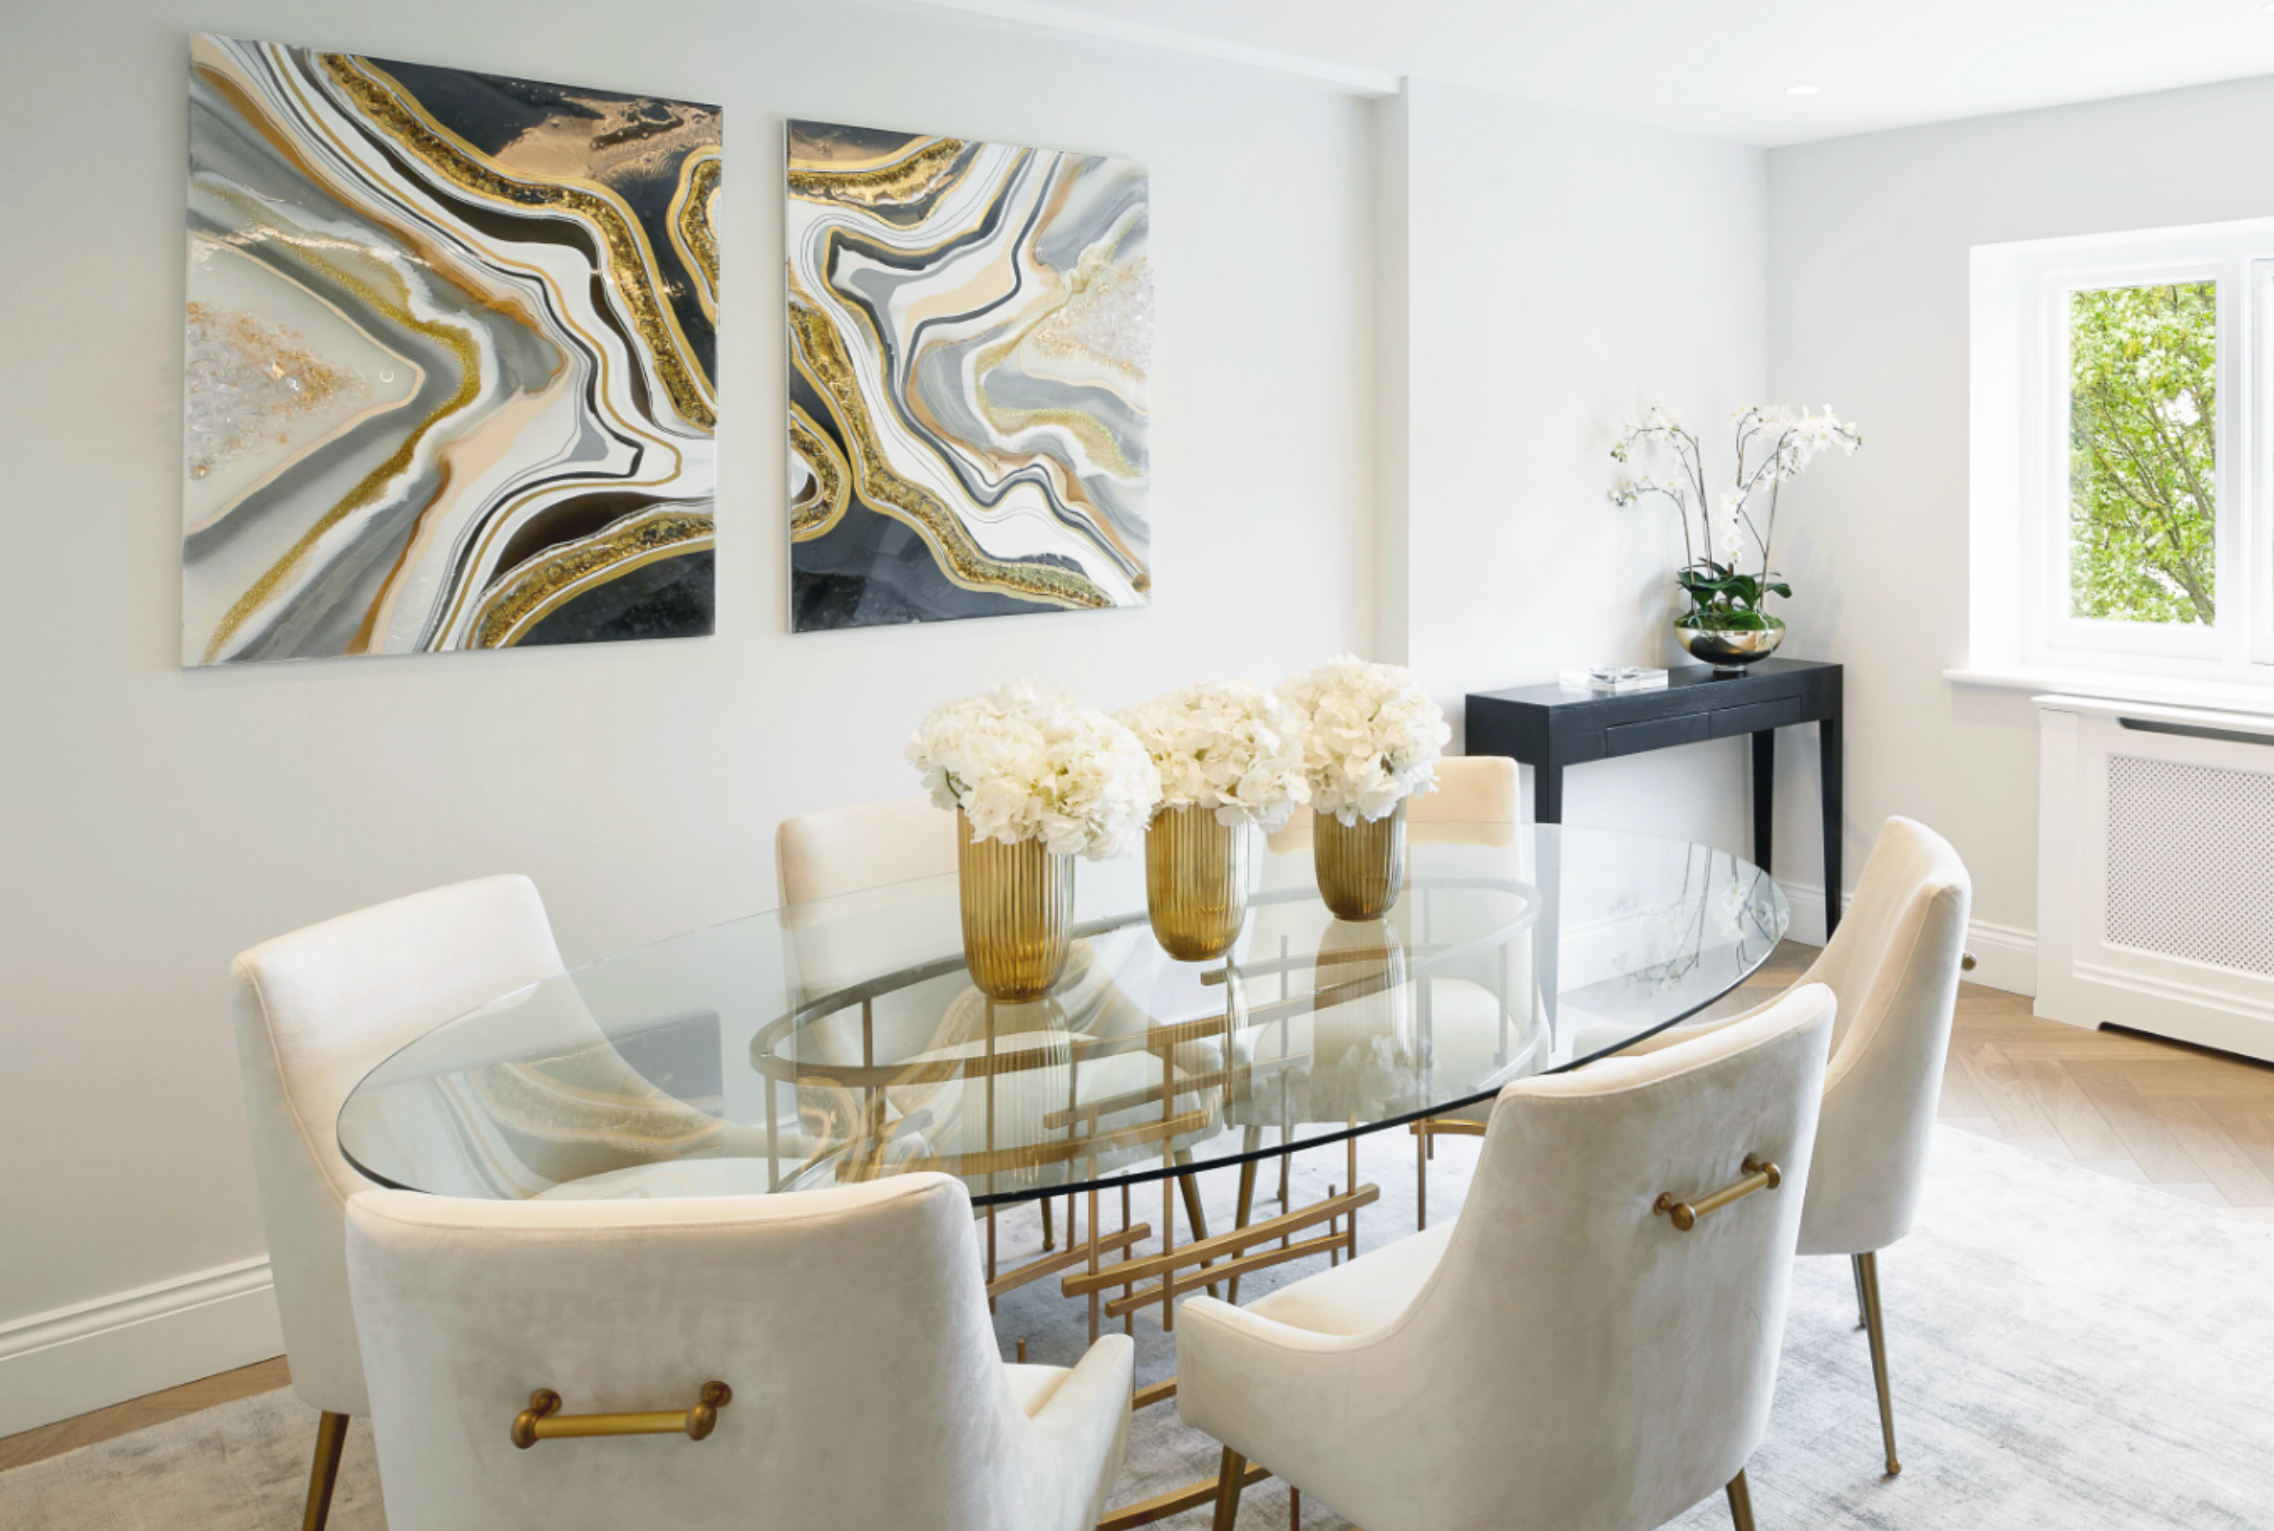 CUSTOMISED - A highly effective and personalised service that sets your property apart on the market. Our staging is entirely tailored to each property we dress using only on-trend high quality furnishings.